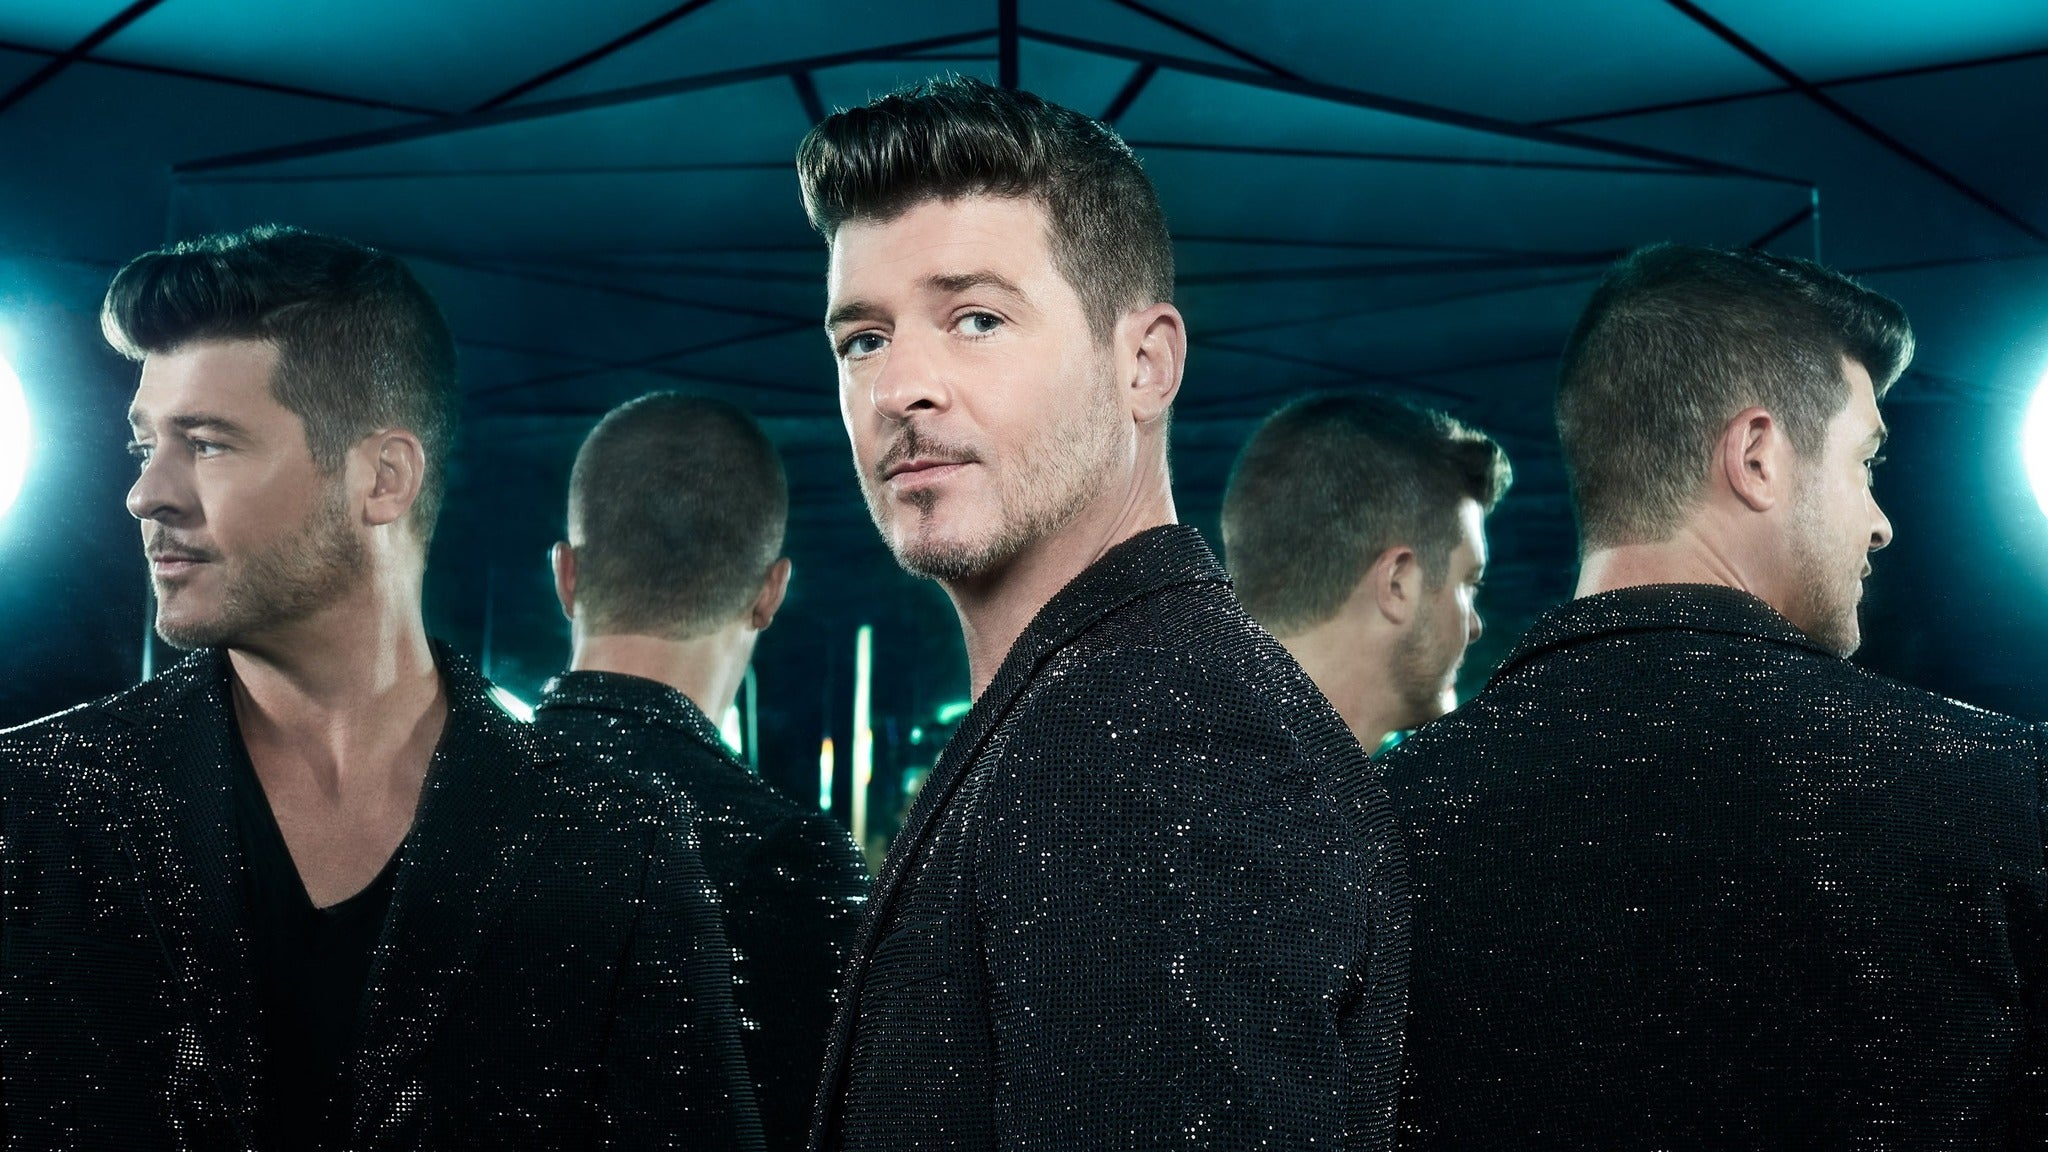 Robin Thicke VIP Meet & Greet Upgrade (Ticket Not Included)